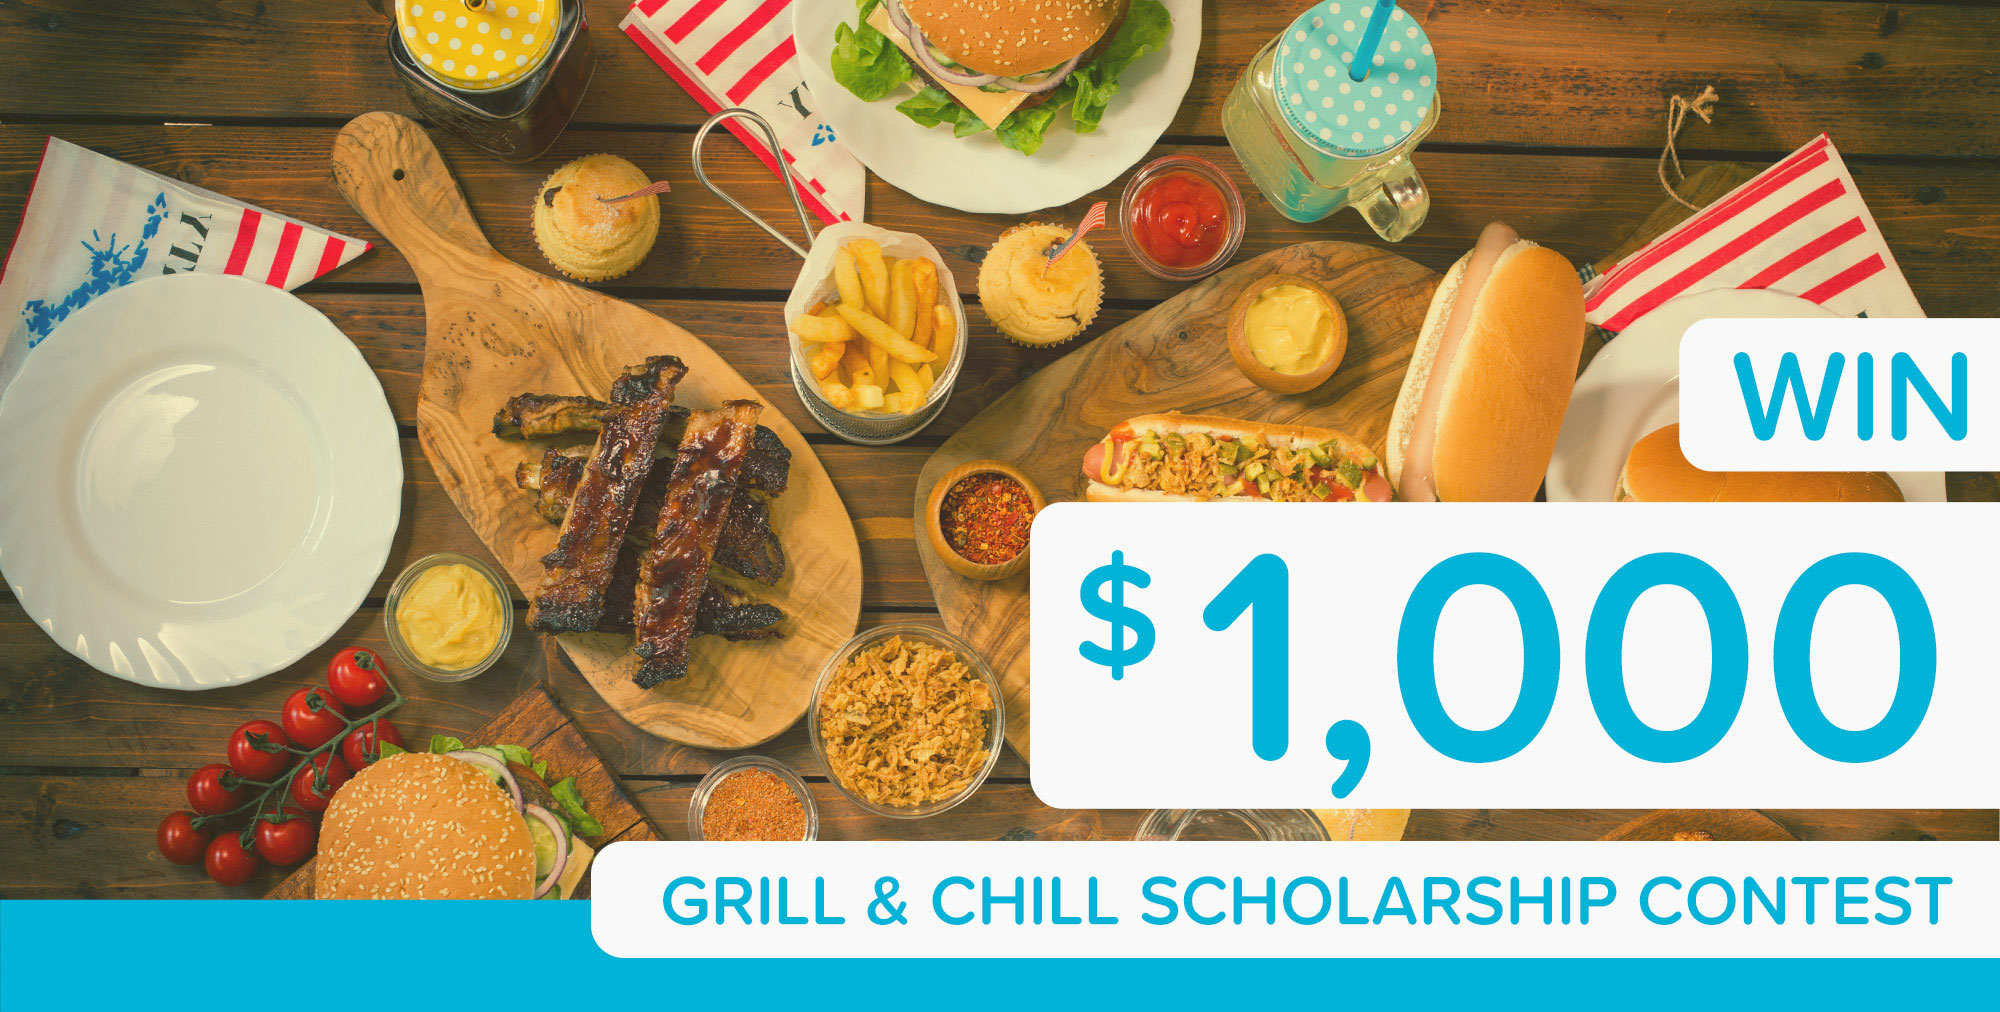 $1,000 Grill & Chill Scholarship Contest